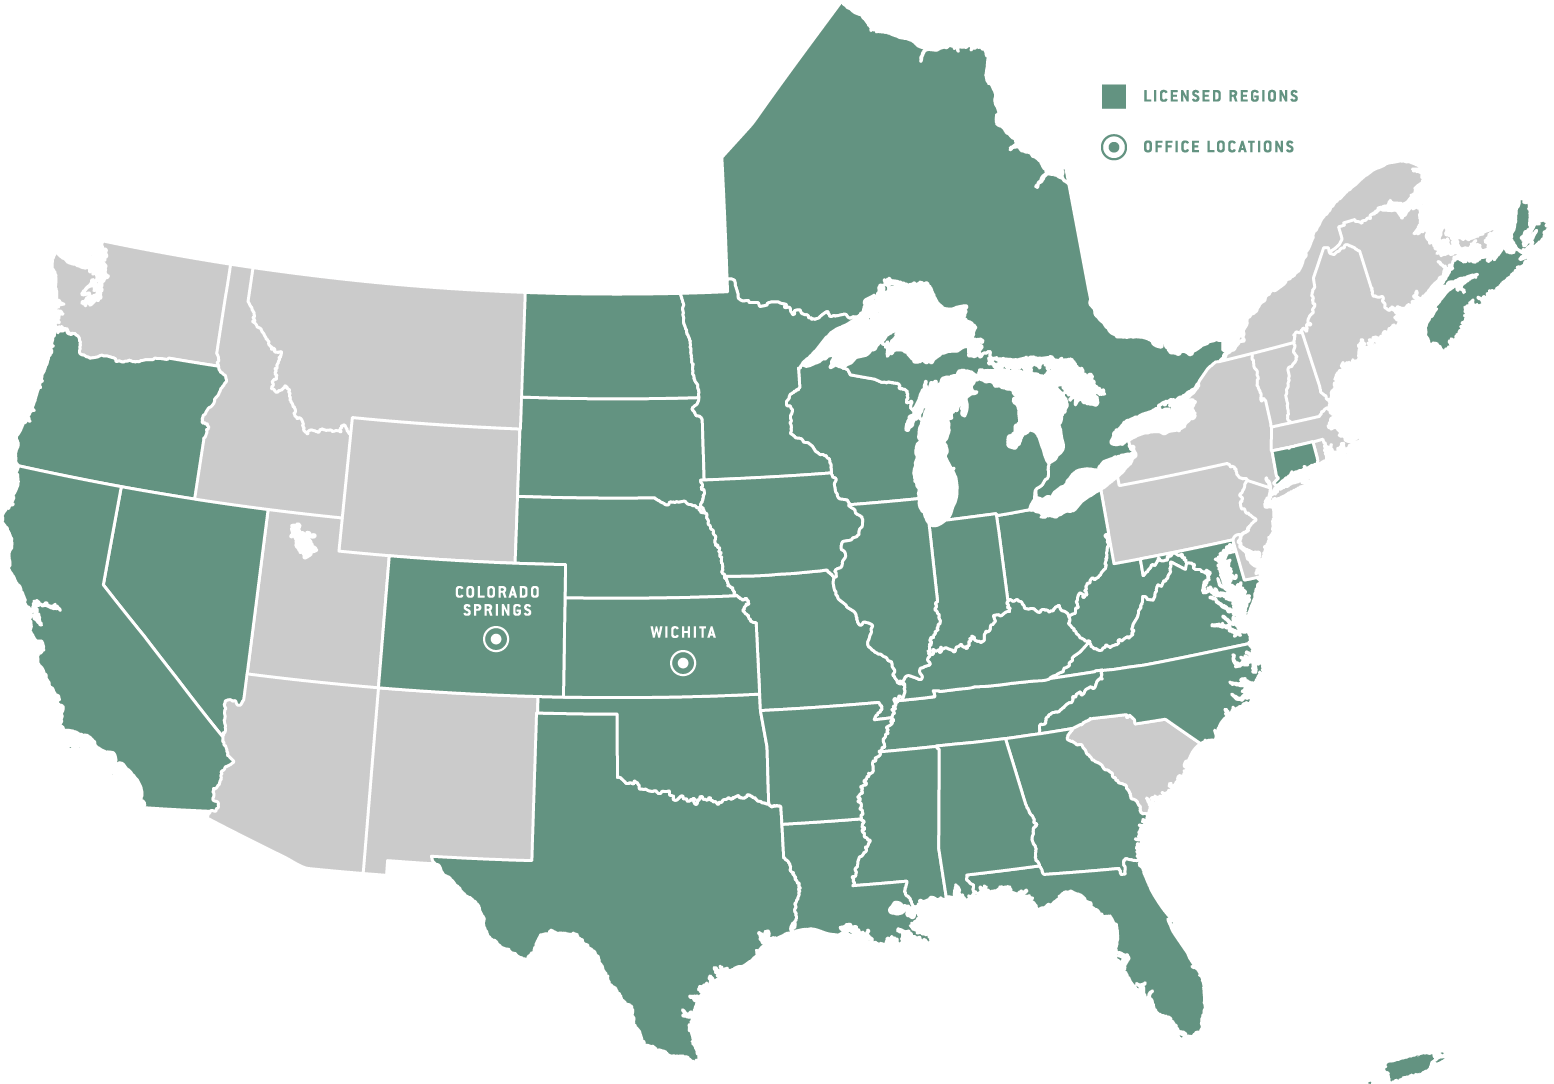 Licensed Regions Map